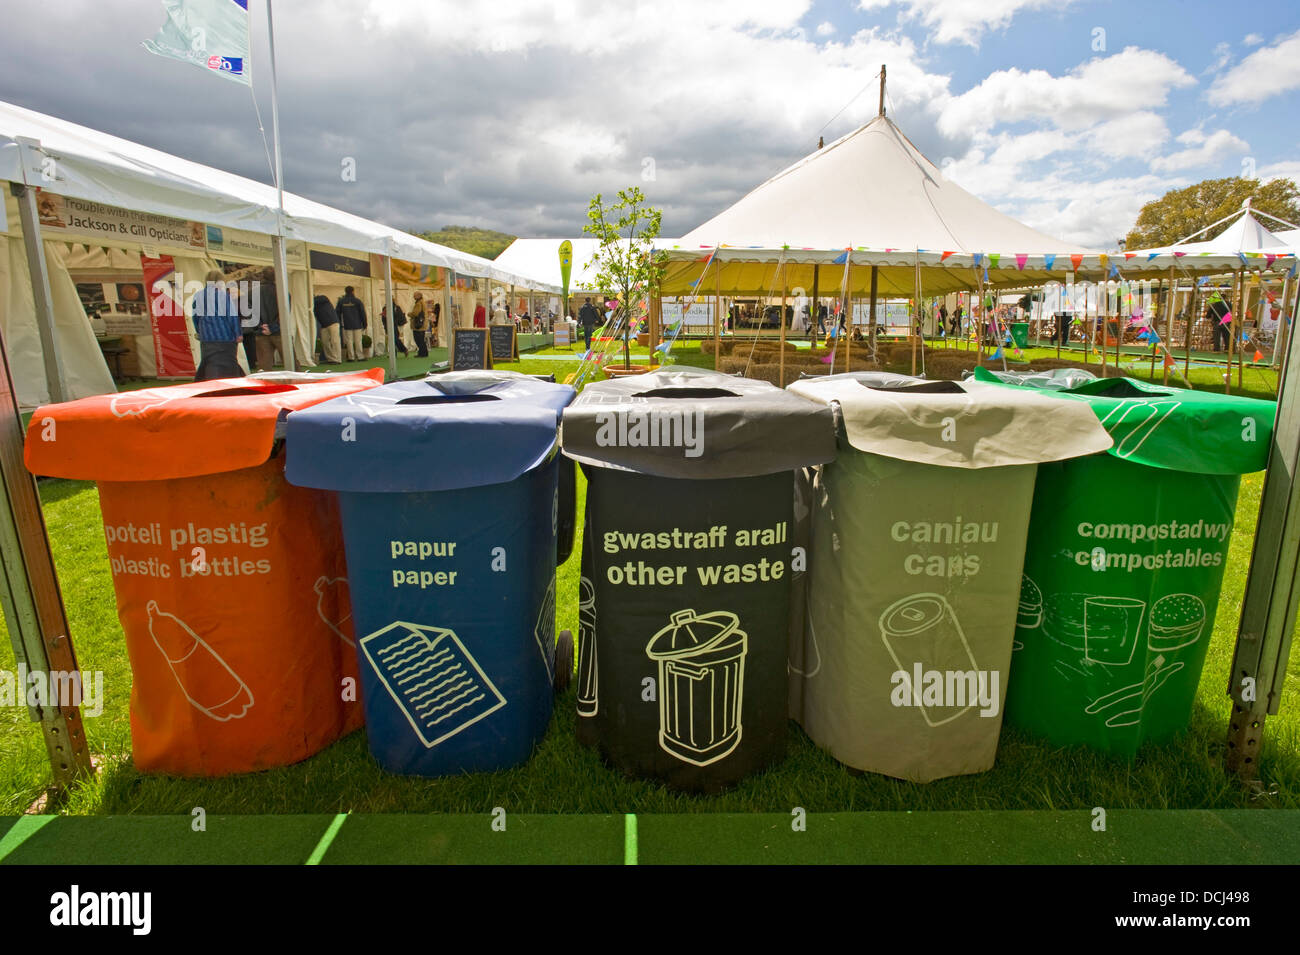 Recycling bins at the Hay festival with English and Welsh names. - Stock Image